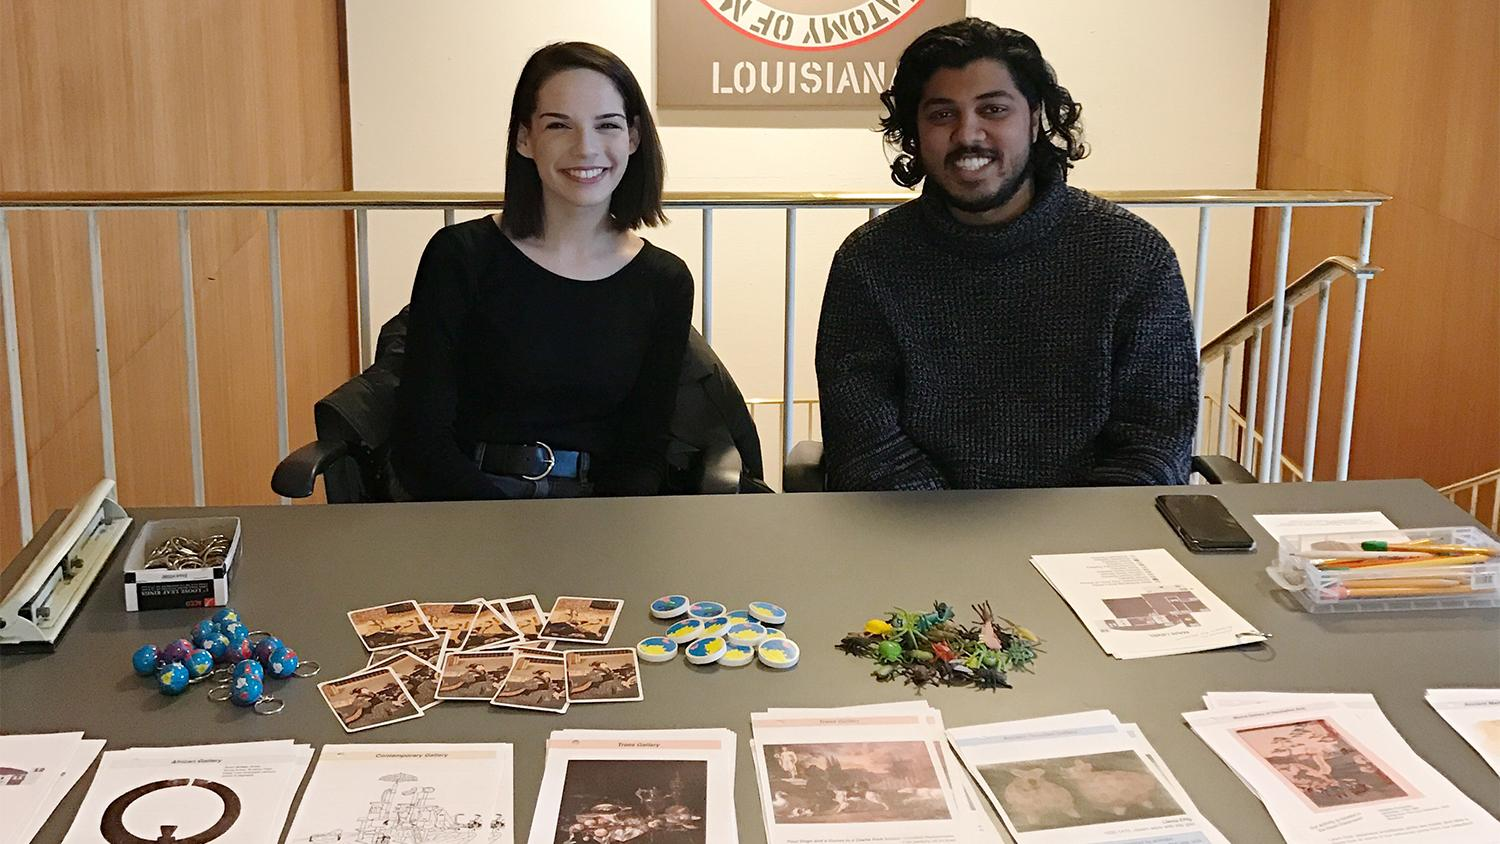 Krannert Art Museum students Aimee Schneider and Samit Sinha prepare to welcome families to Family Walk & Talk, 2017.